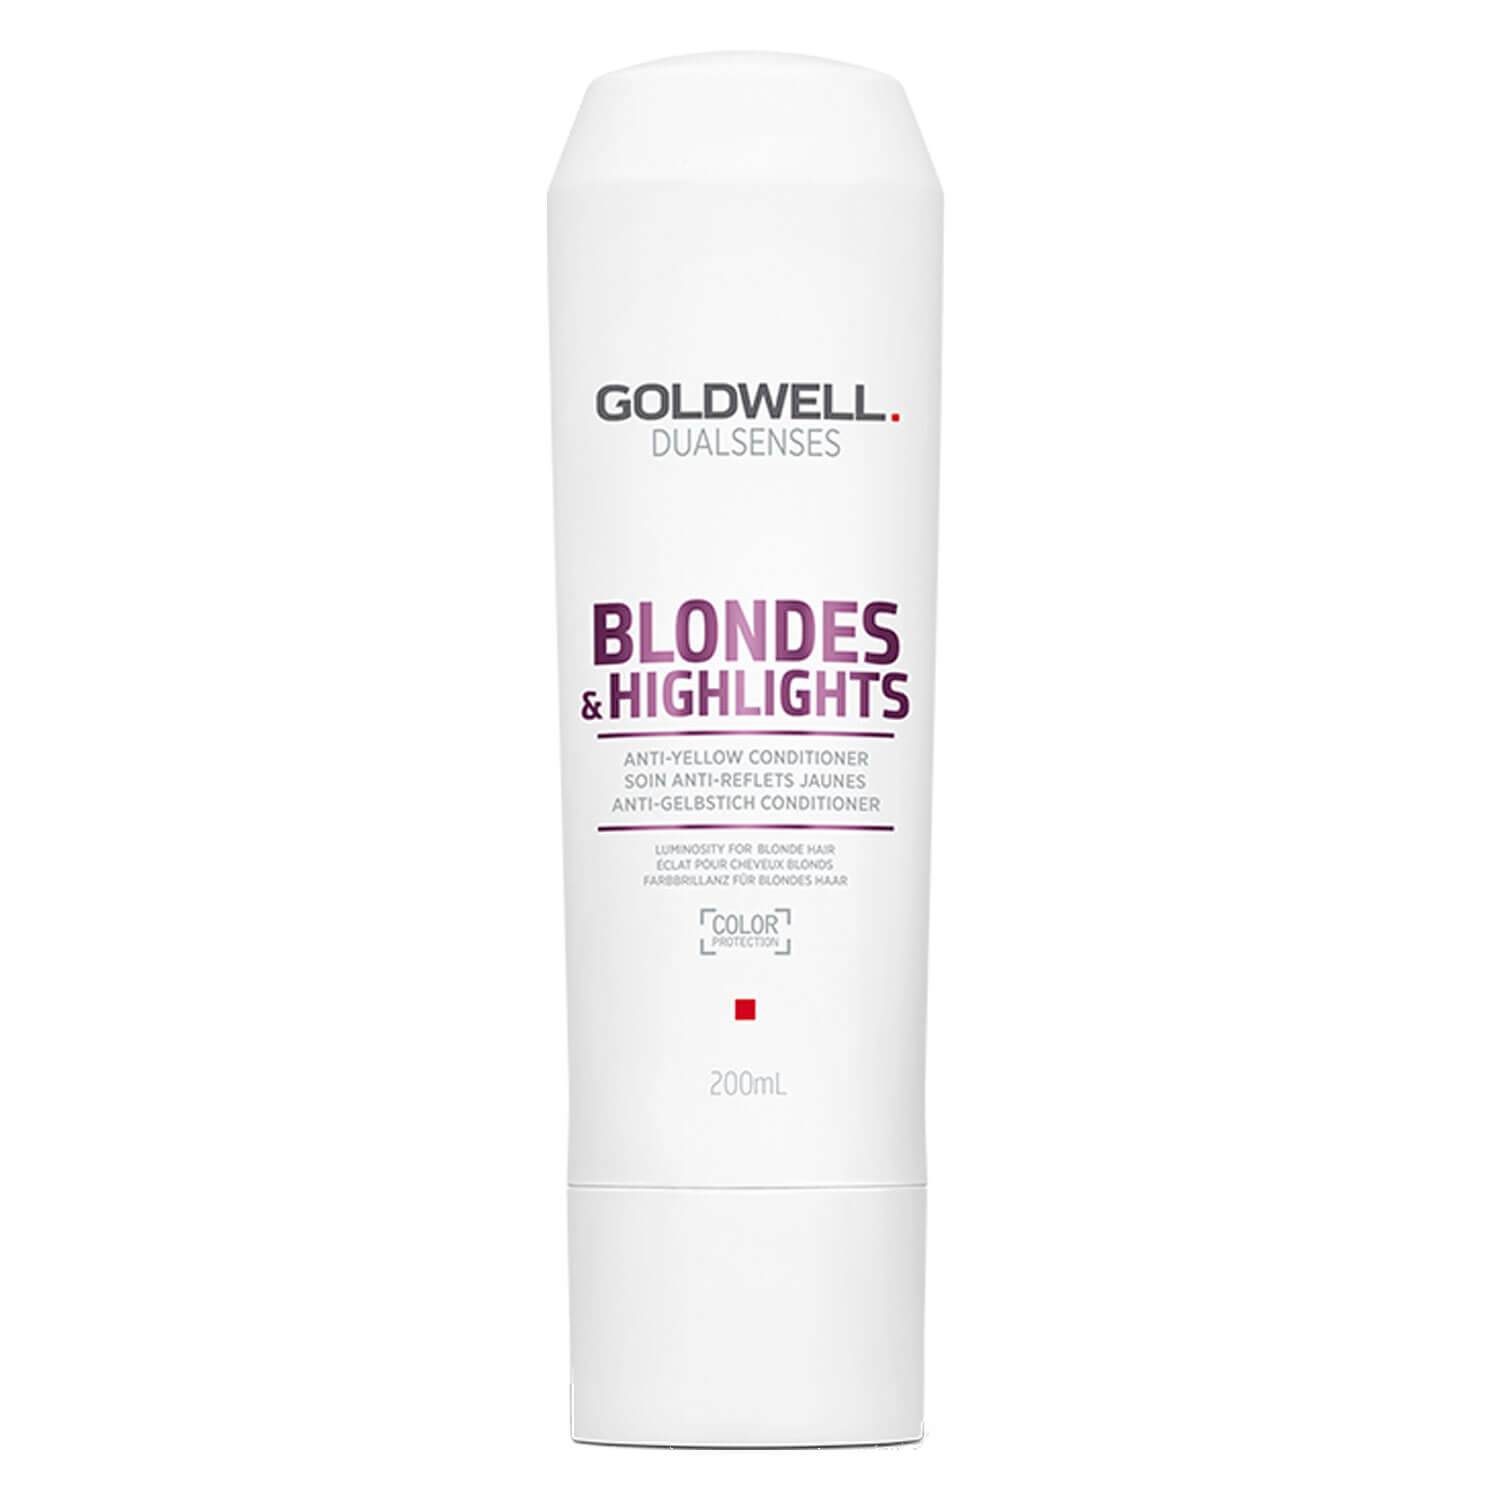 Dualsenses Blondes & Highlights - Anti-Yellow Conditioner - 200ml